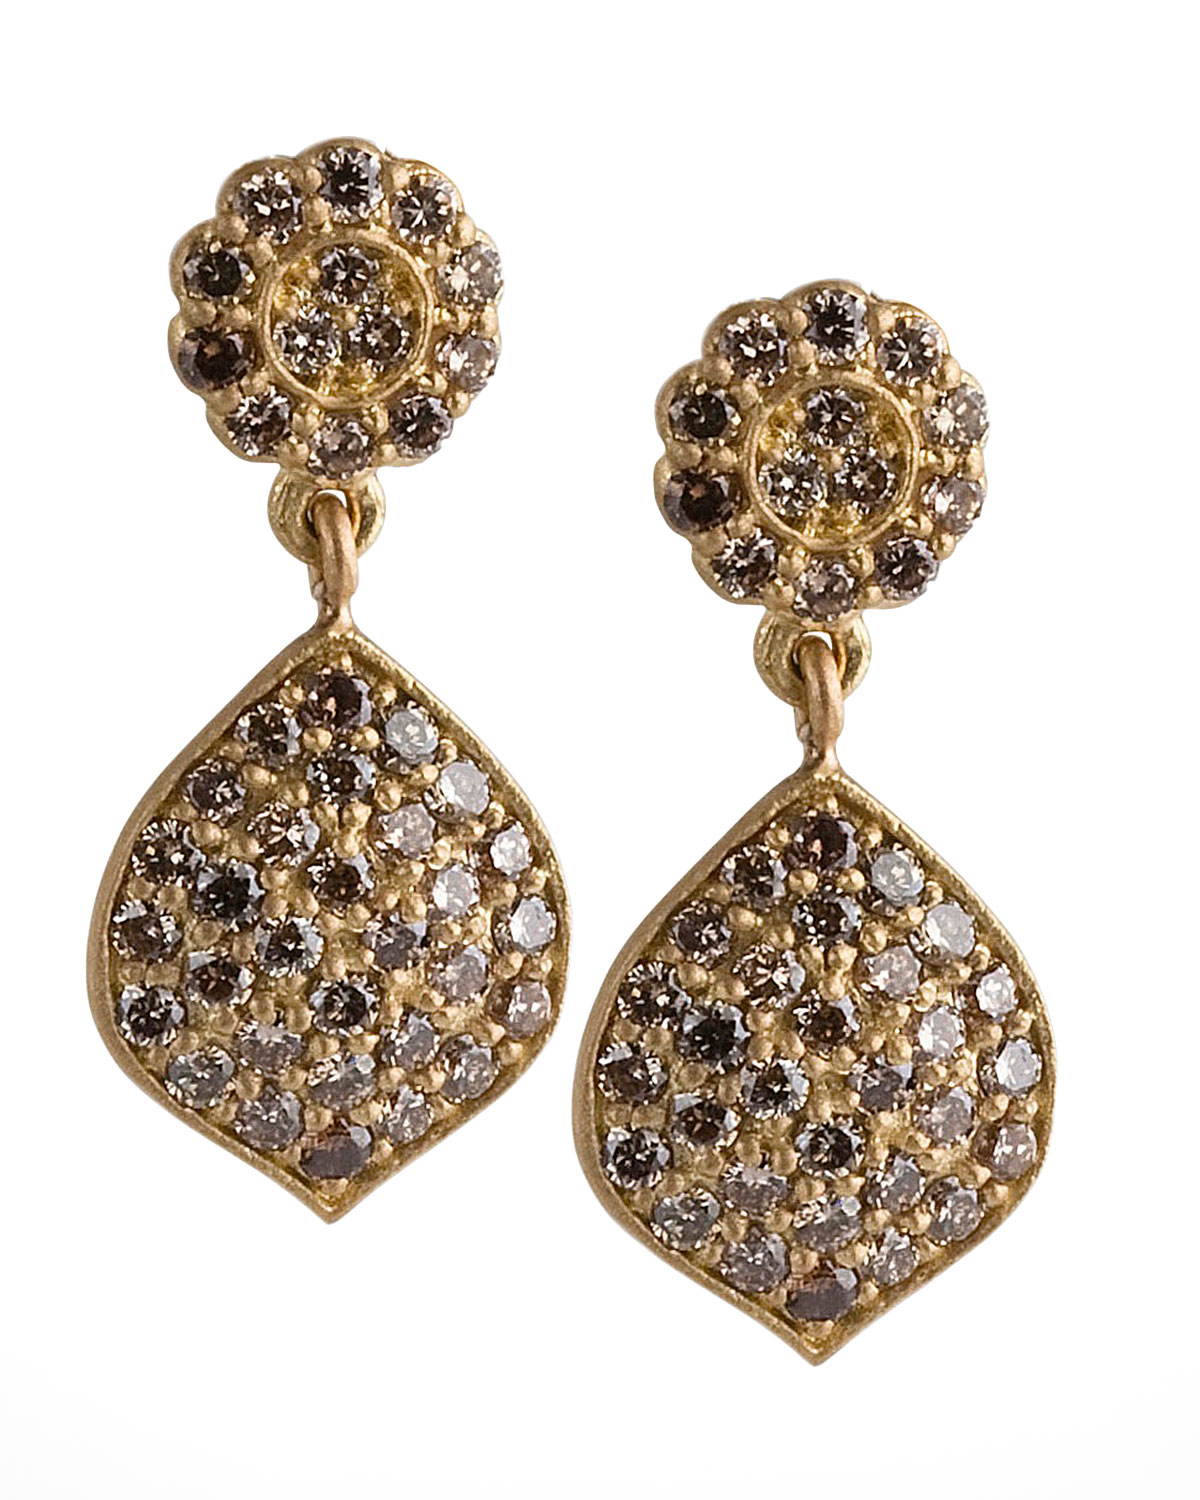 Jamie Wolf Tiny Pavé Acorn Earrings with Diamonds vBVAzNZU